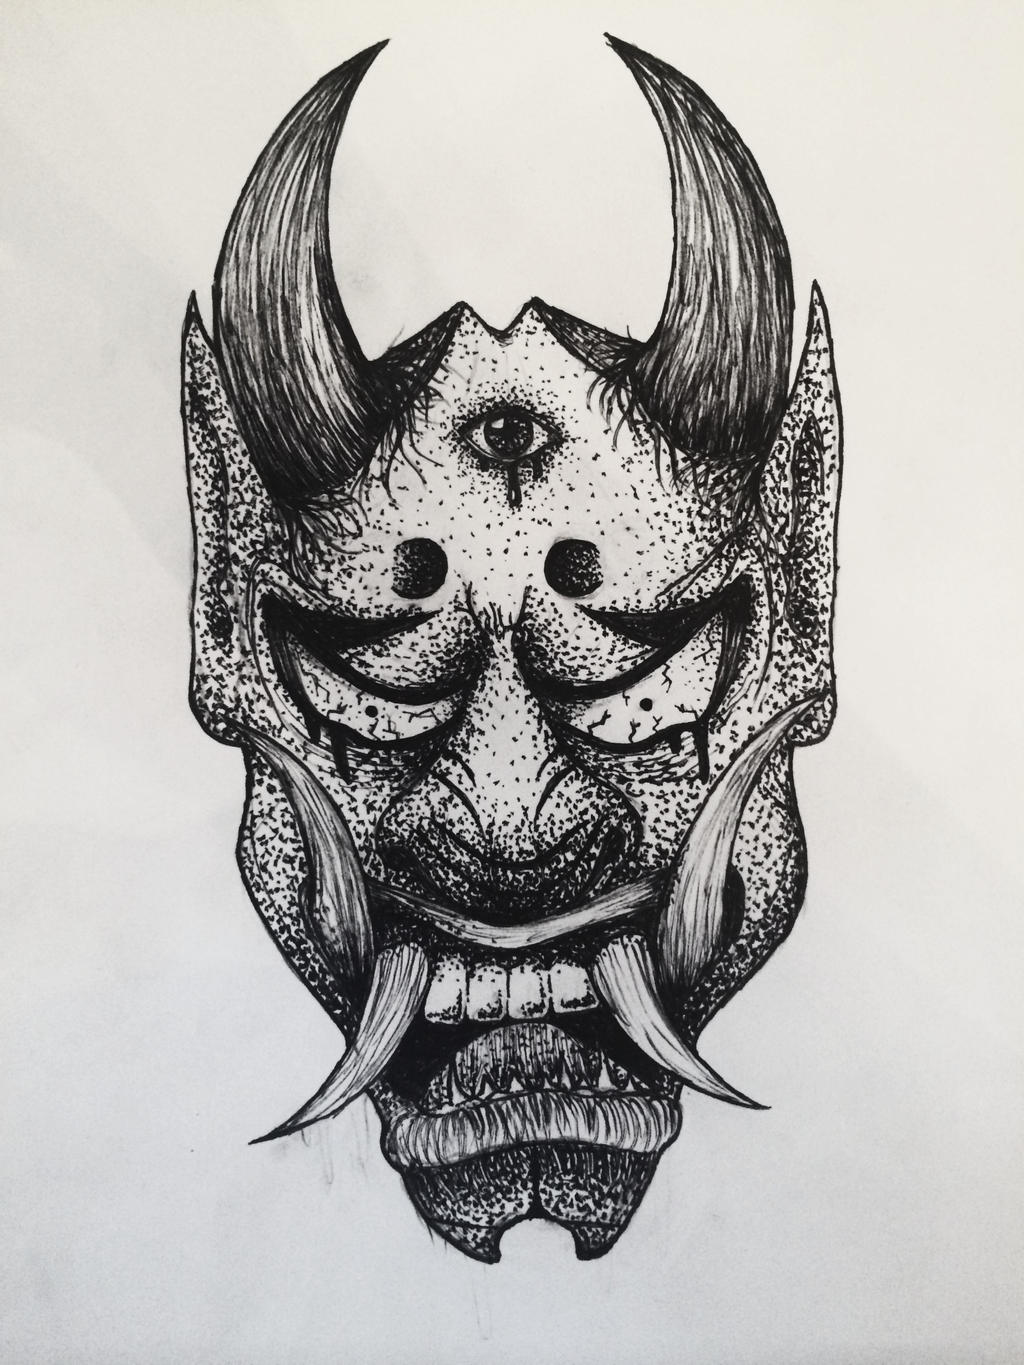 oni mask tattoo design concept by humannisart on deviantart. Black Bedroom Furniture Sets. Home Design Ideas